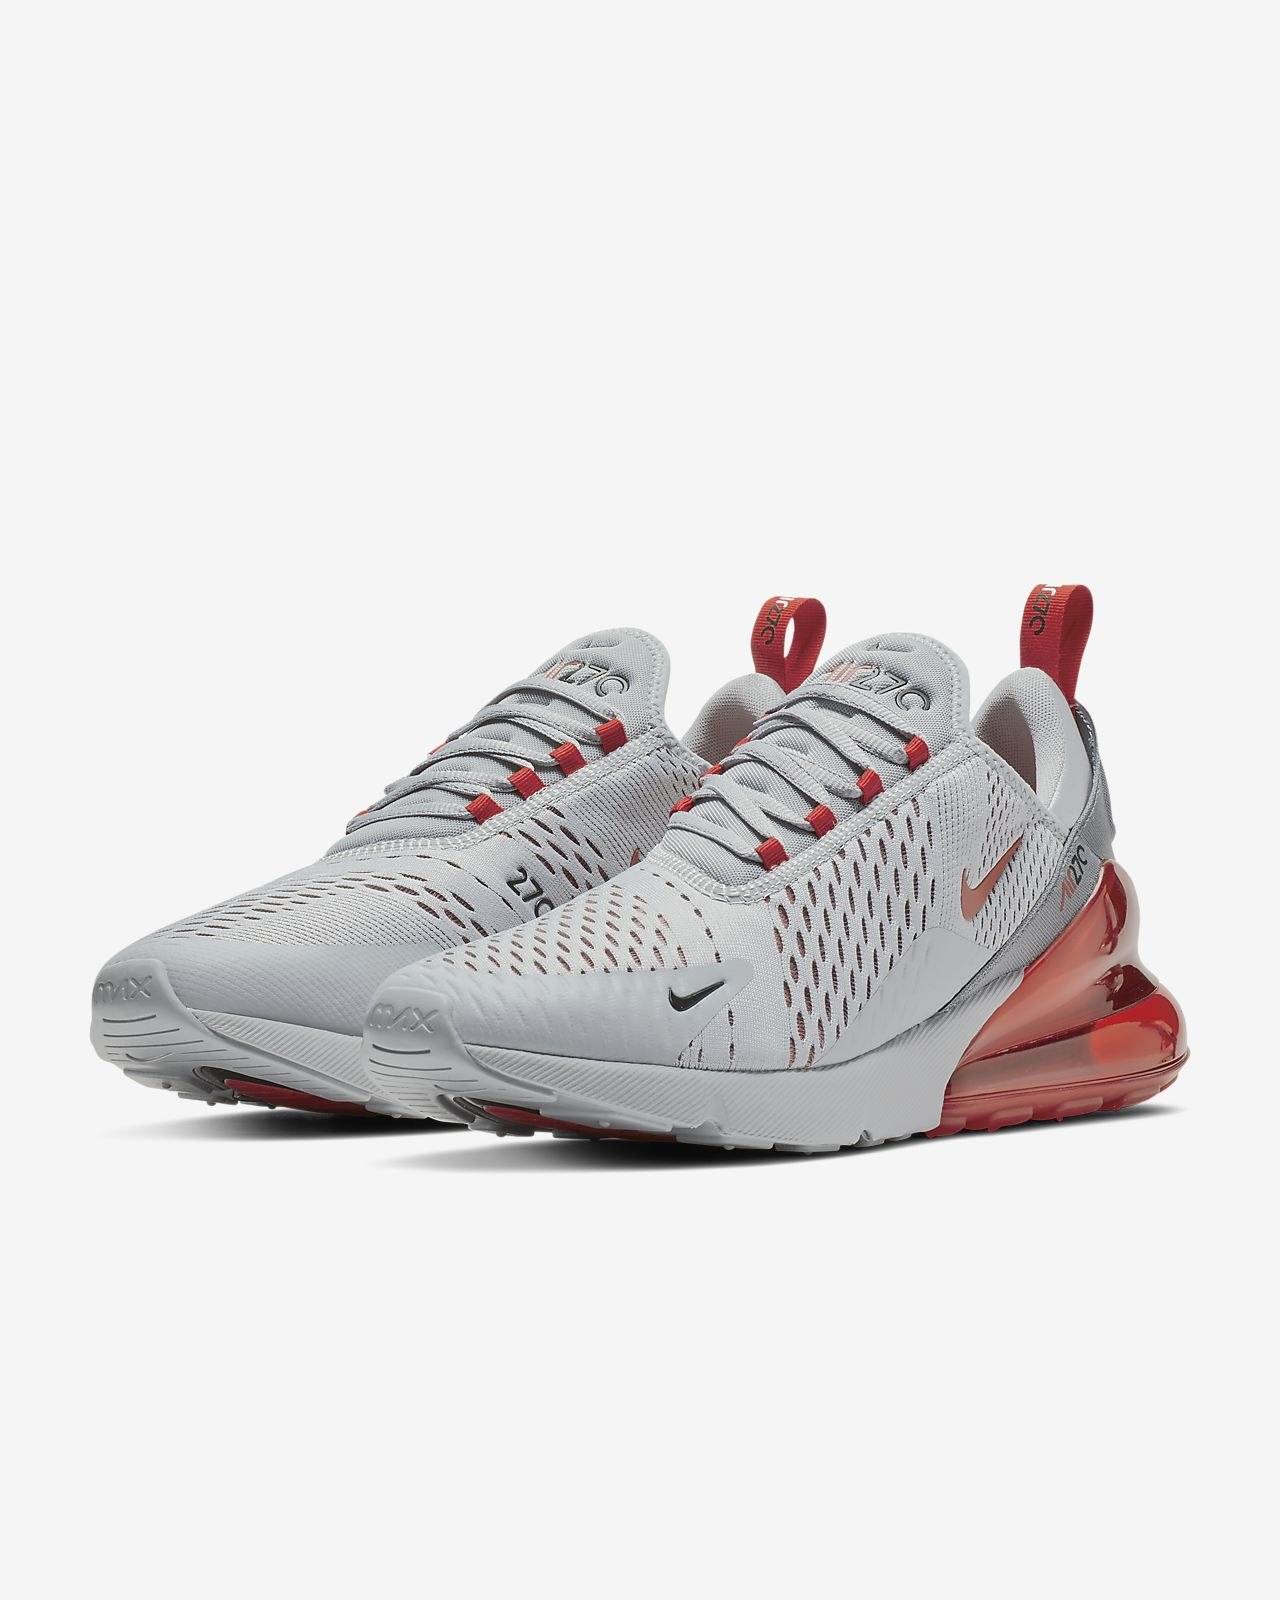 9343d97d22d Low Resolution Nike Air Max 270 Herenschoen Nike Air Max 270 Herenschoen